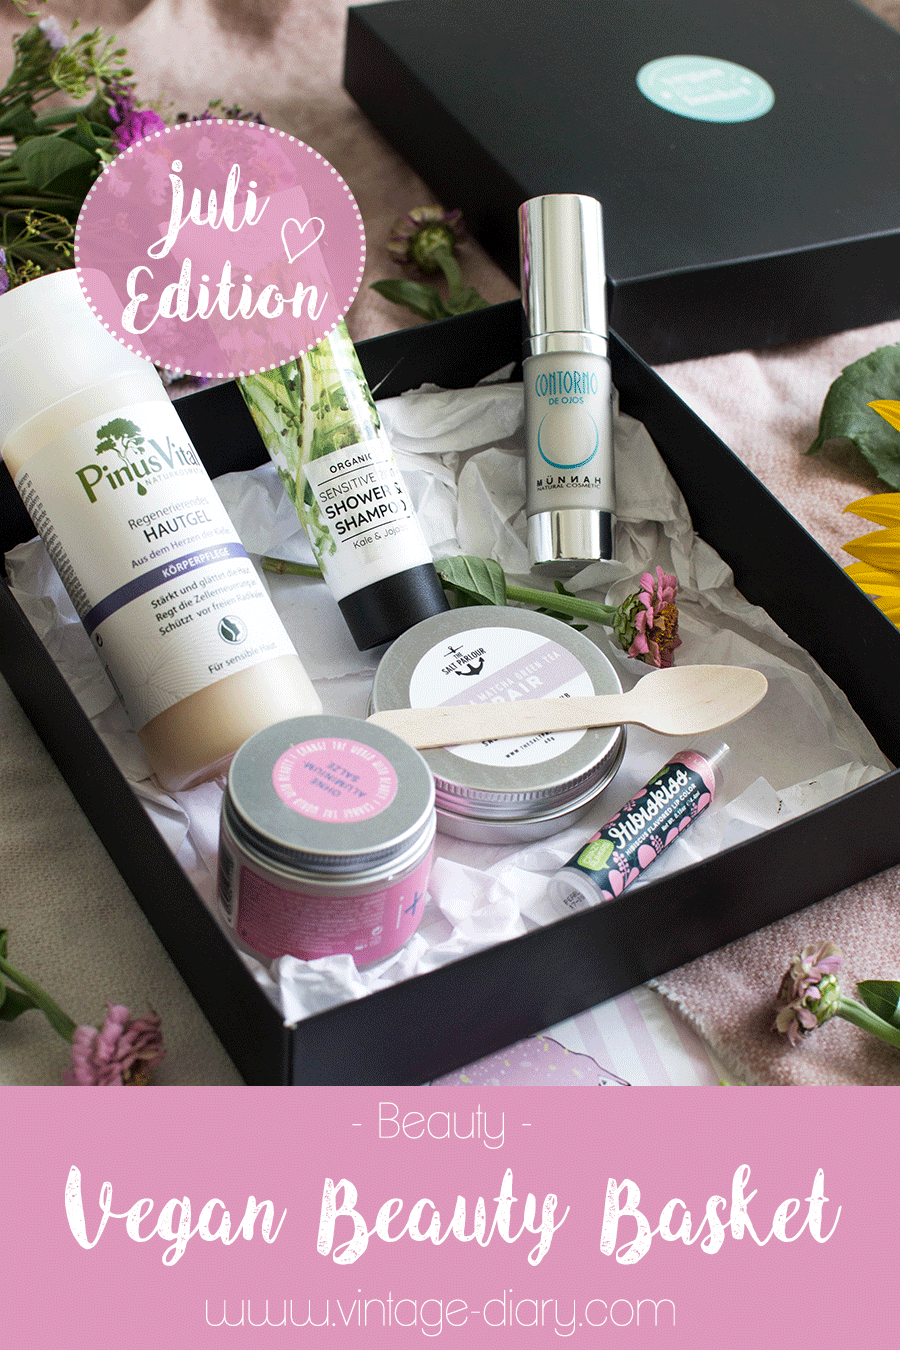 Vegan Beauty Basket (Juli Edition) + Giveaway